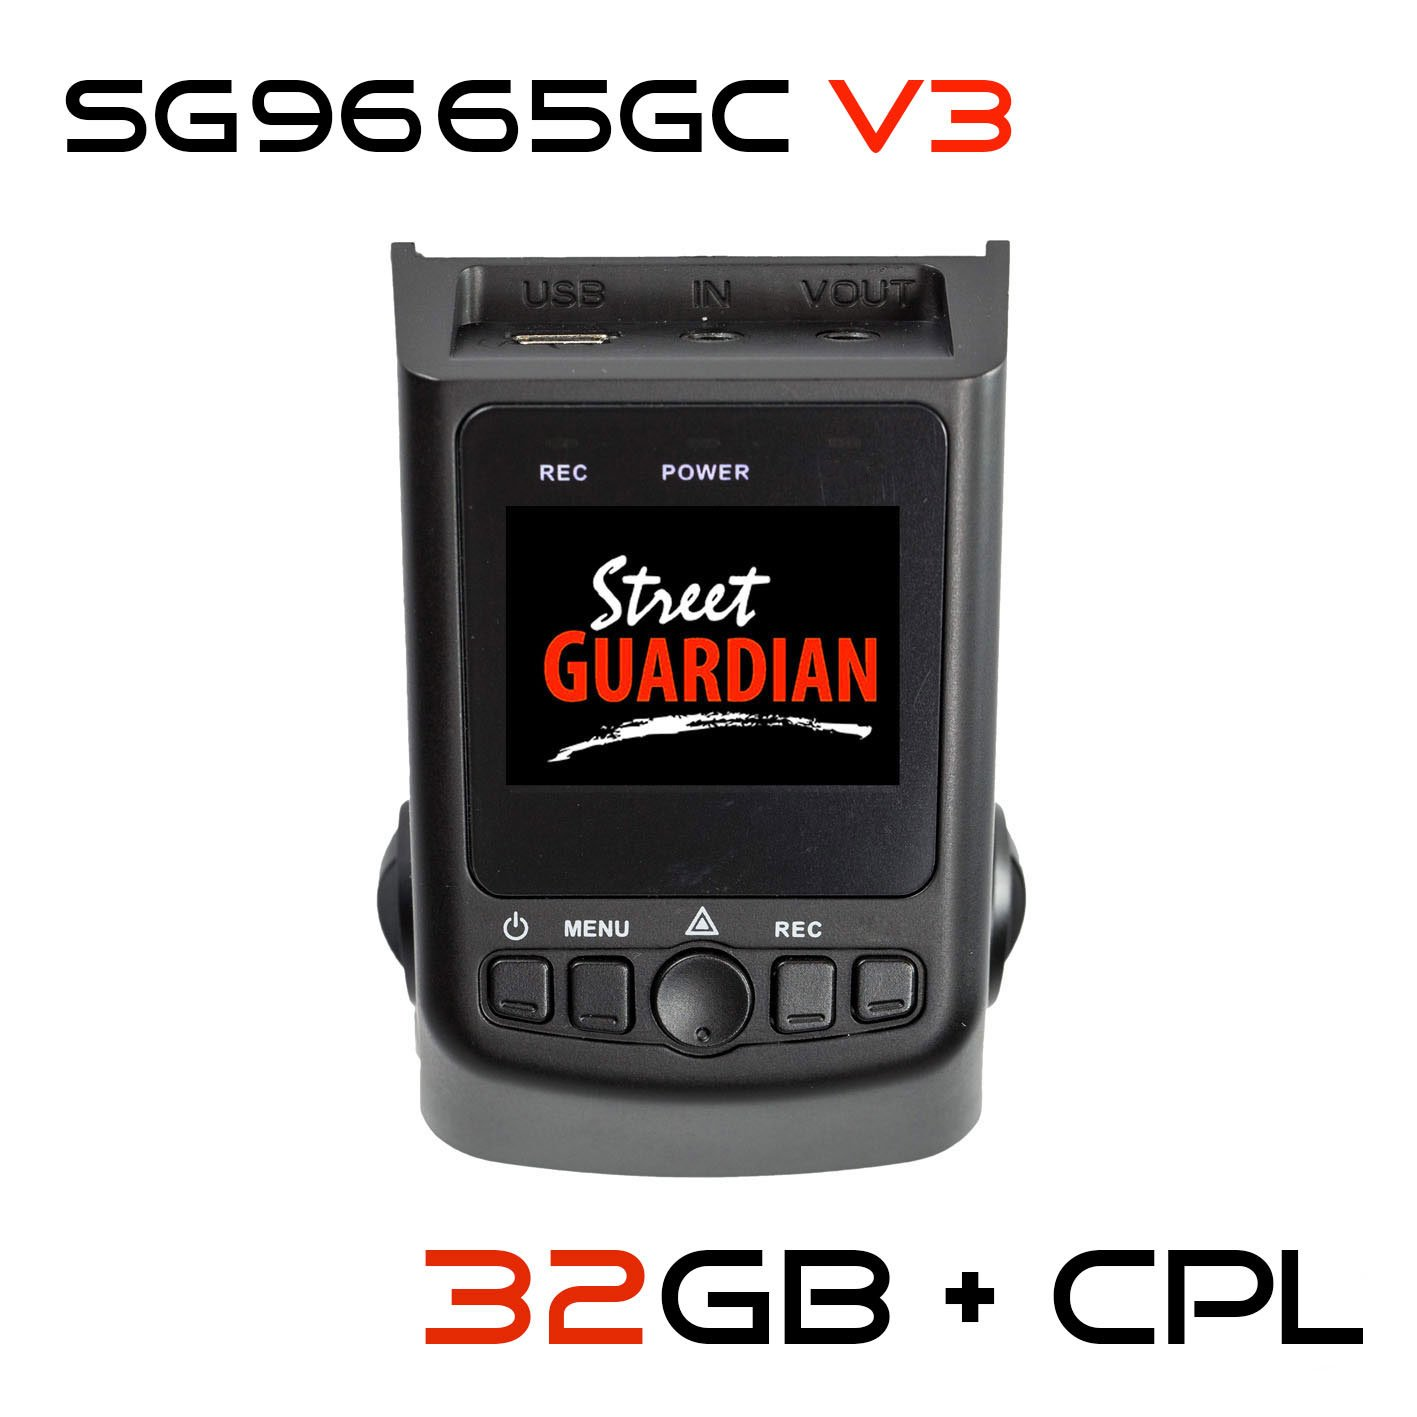 Street Guardian SG9665GC v3 Edition + 32GB microSD Card + CPL + USB/OTG Android Card Reader + GPS, Supercapacitor Sony Exmor IMX322 WDR CMOS Sensor DashCam 1080P 30FPS (Best of - DashCamTalk)